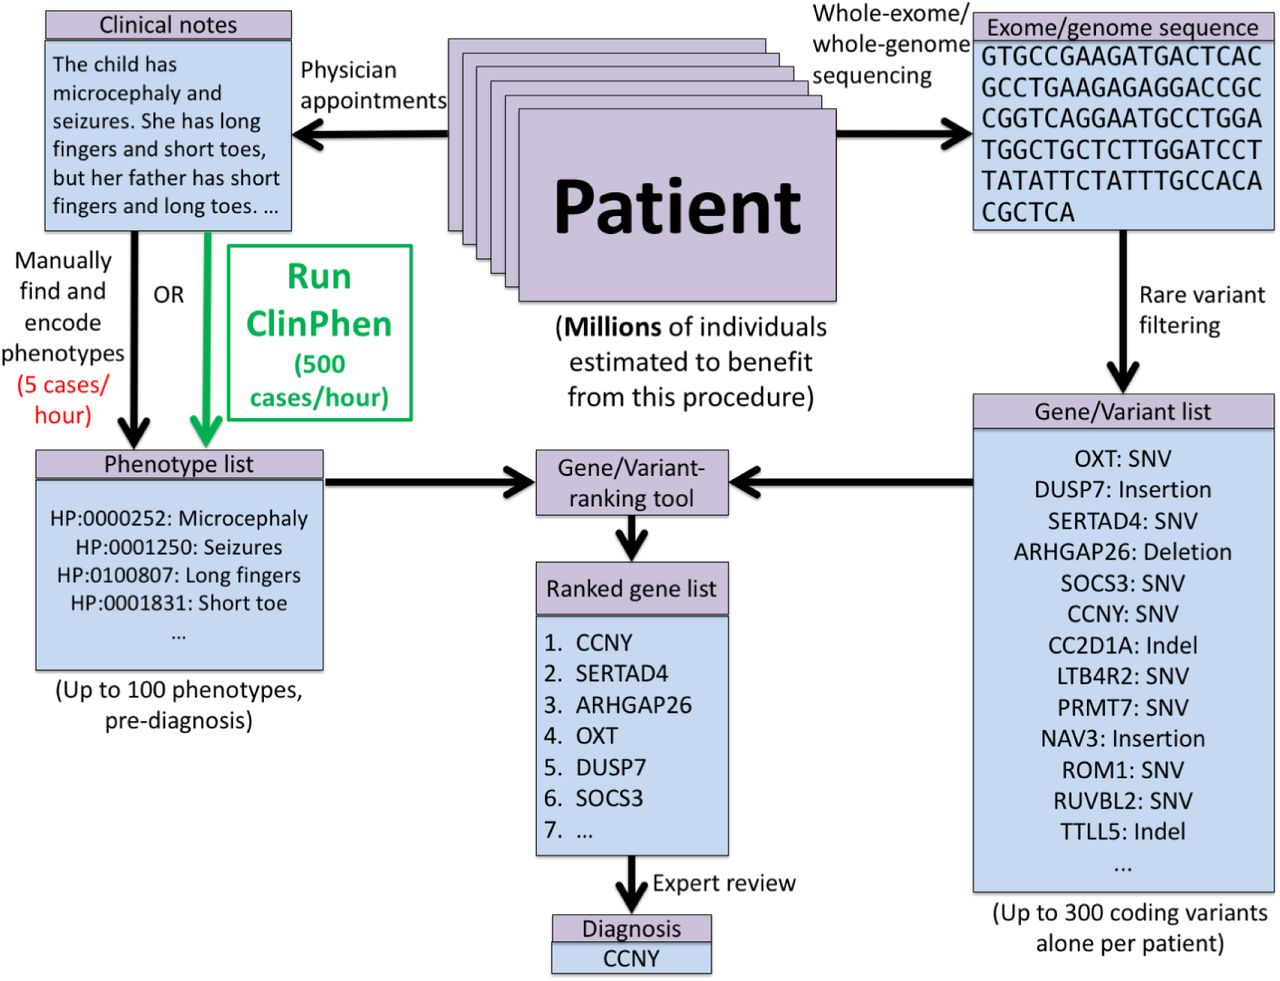 ClinPhen extracts and prioritizes patient phenotypes directly from